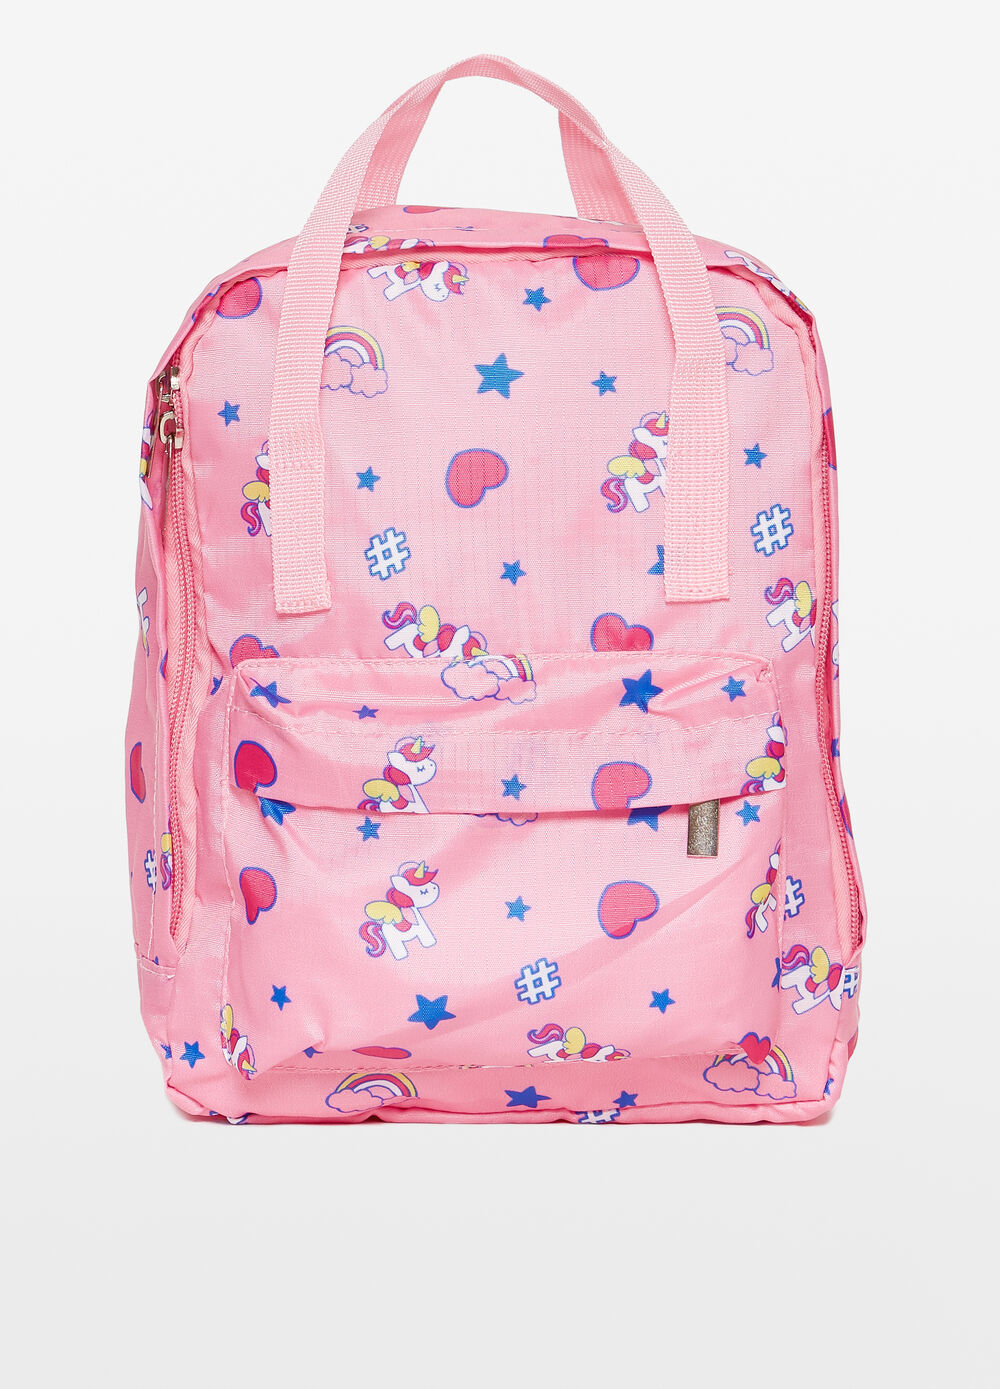 Heart and unicorn patterned backpack